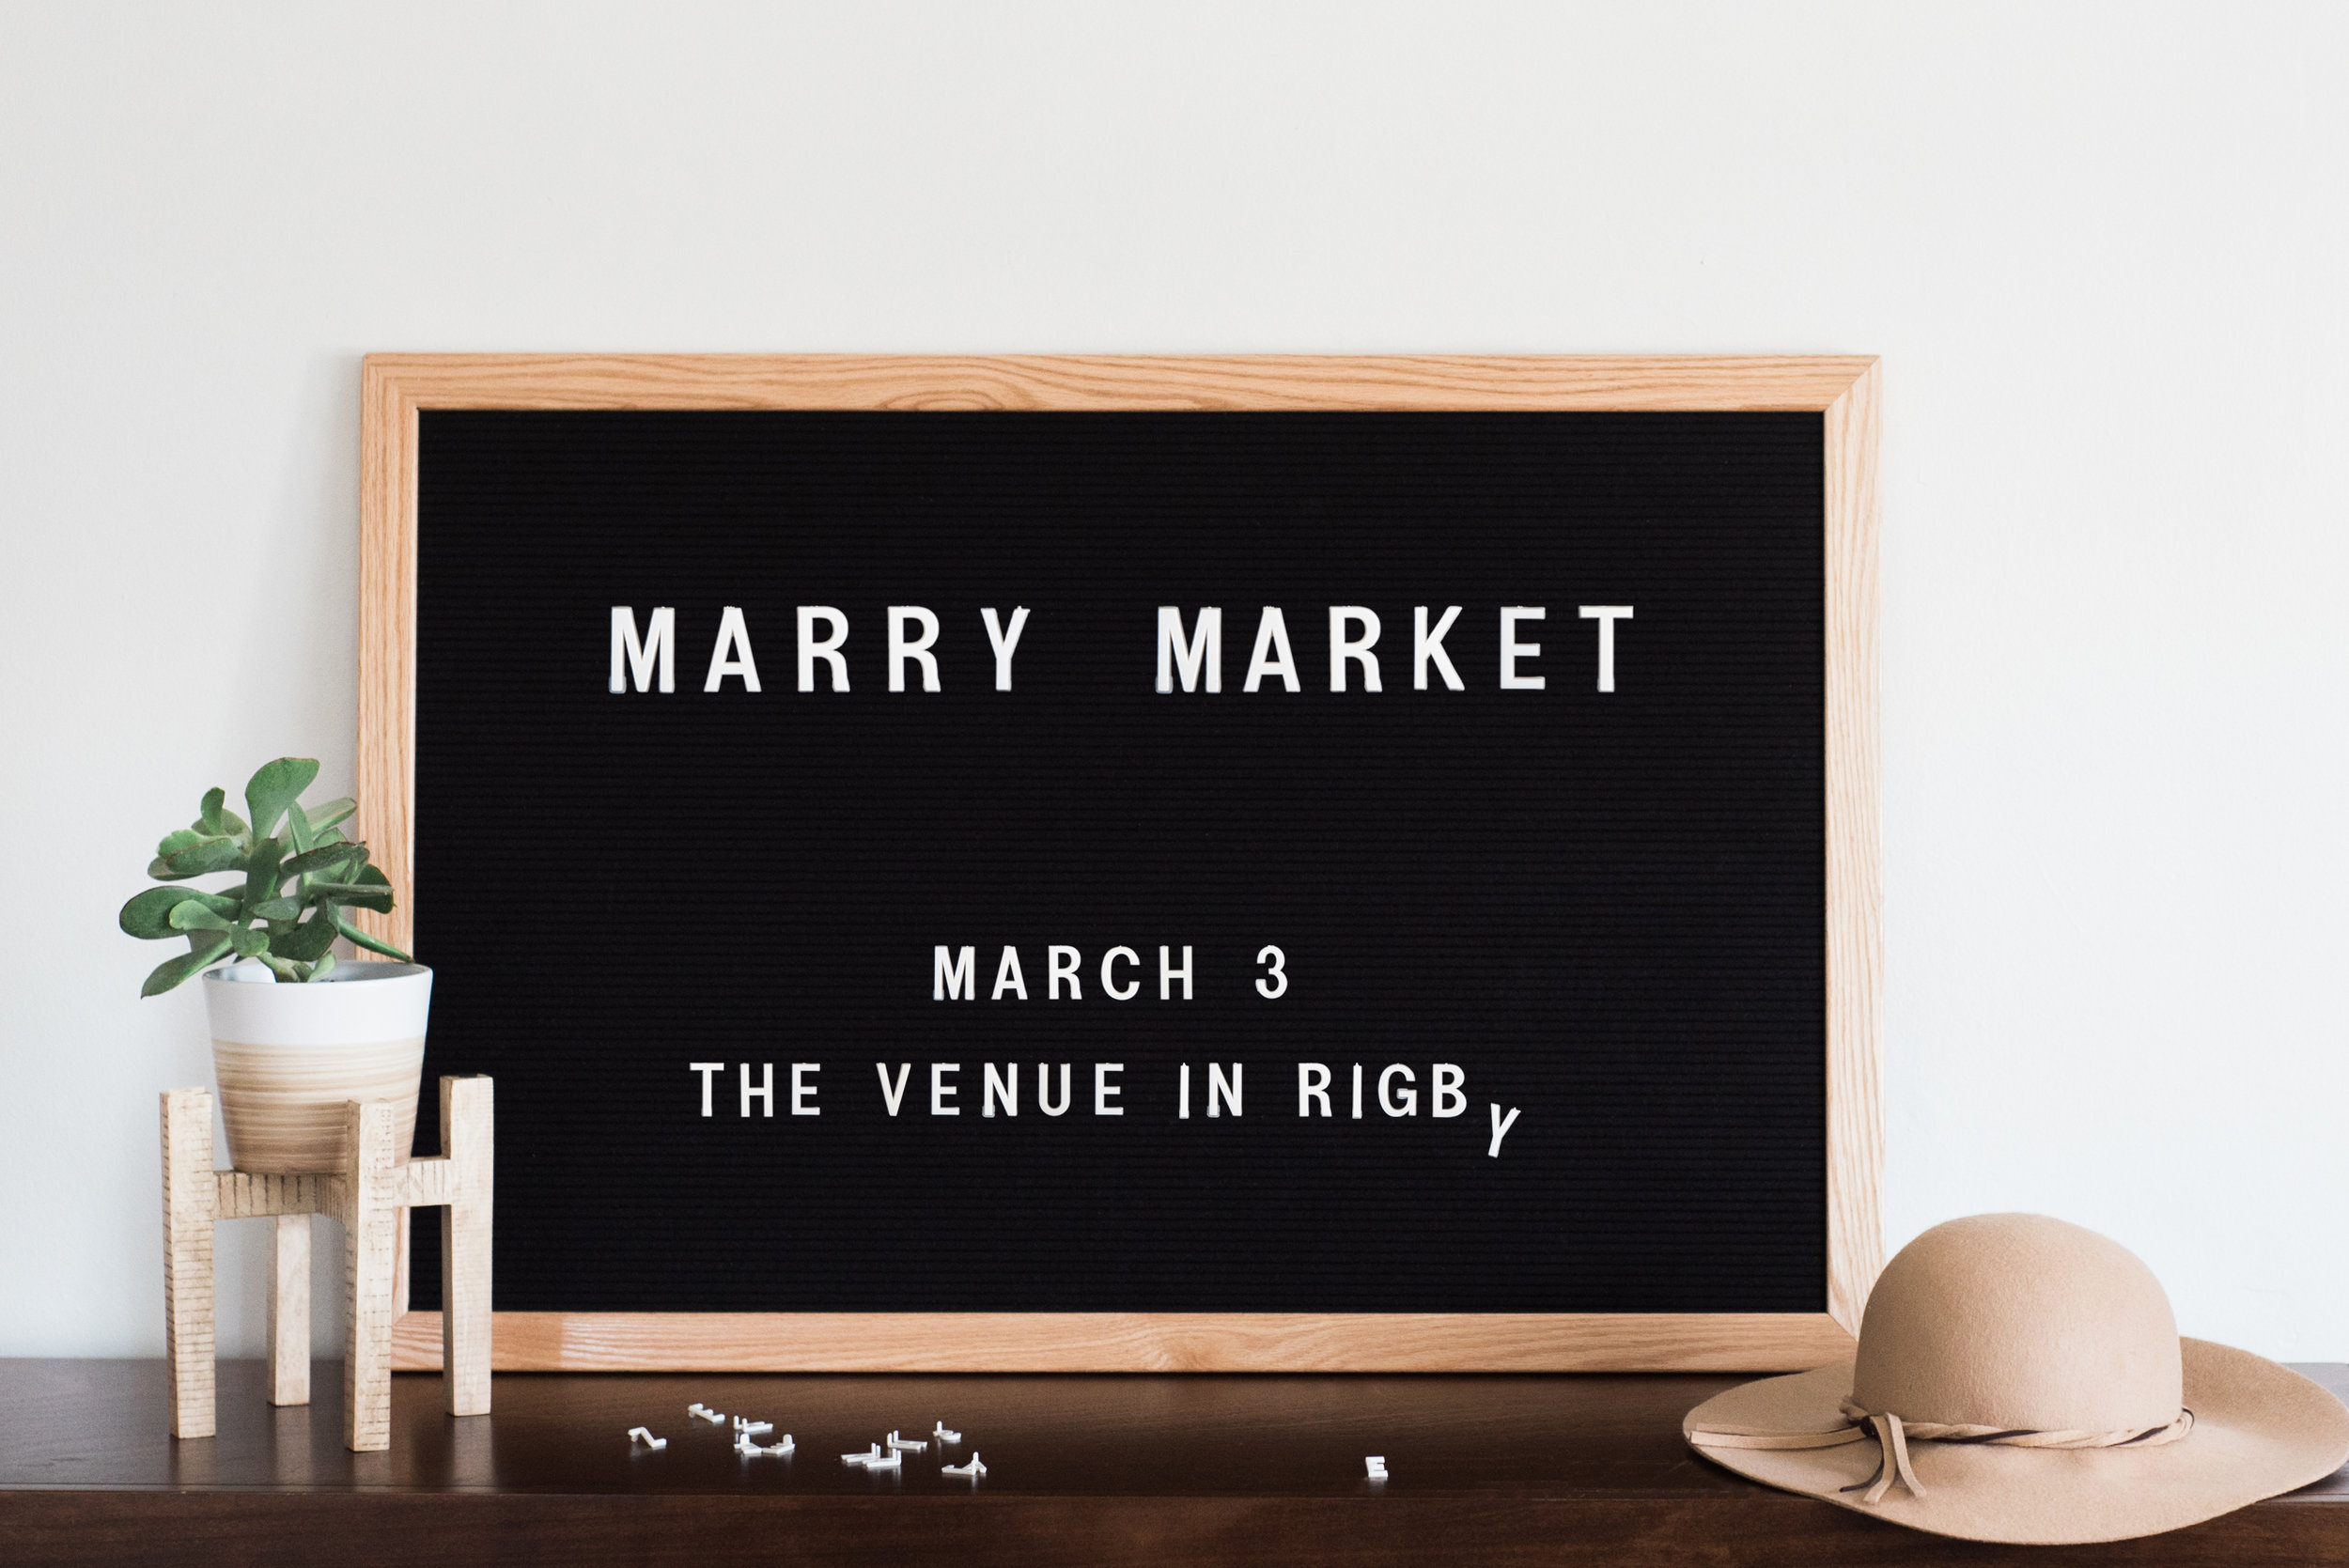 MARRY MARKET LETTER BOARD.jpg